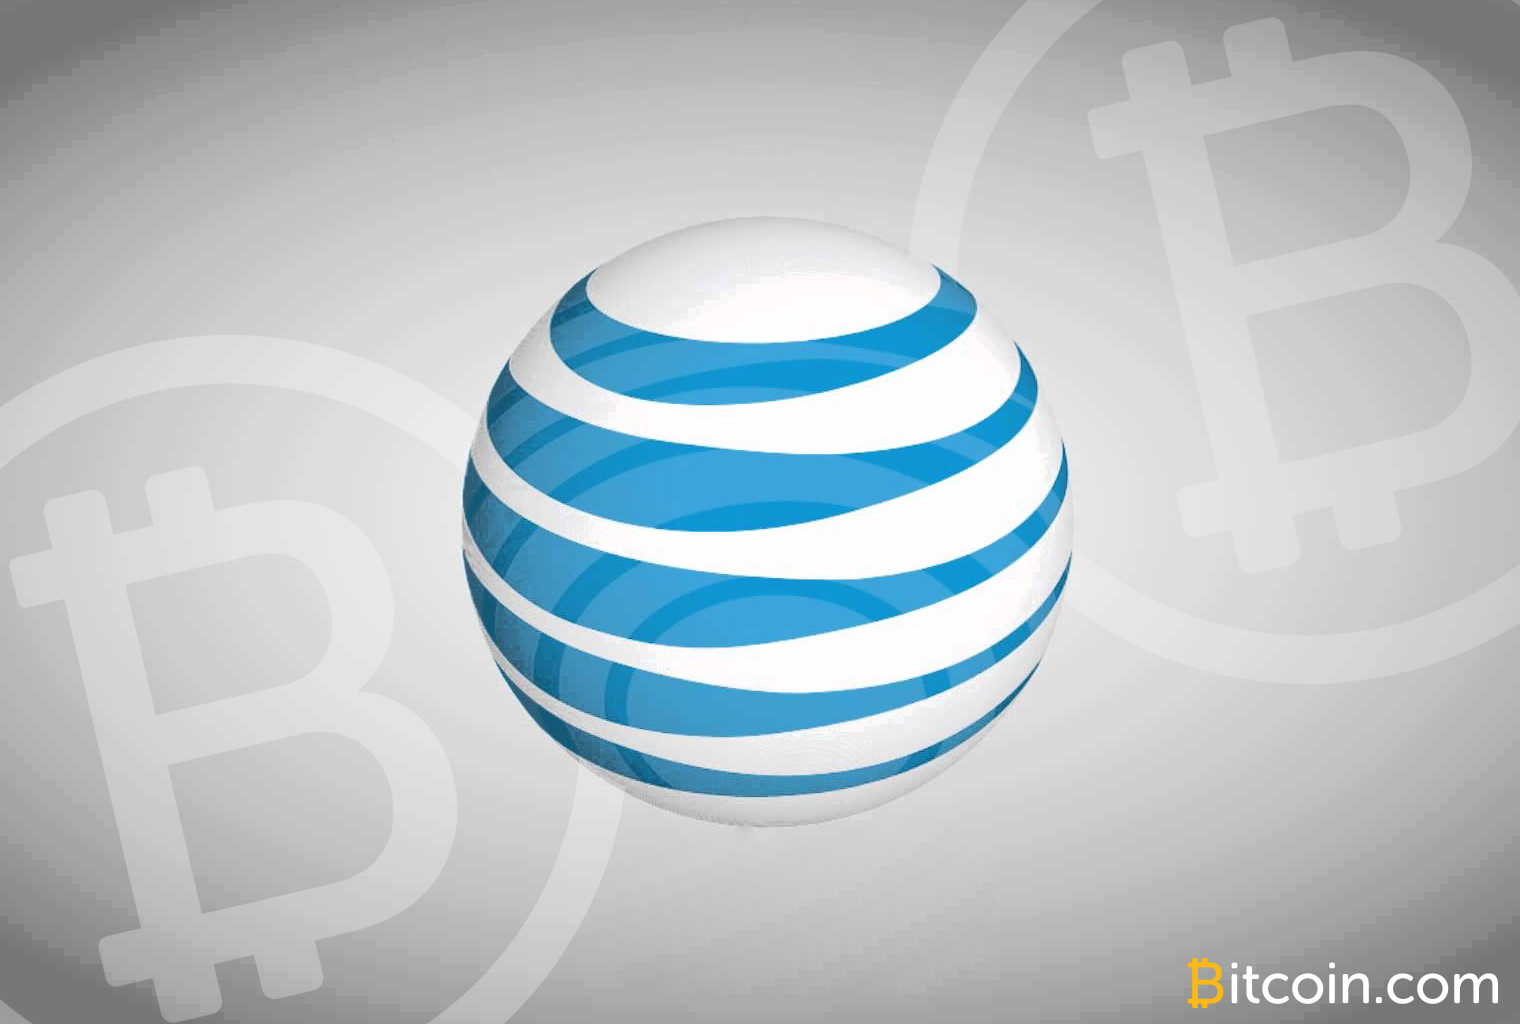 Telecom Giant AT&T Now Accepts Bitcoin Payments - Bitcoin News